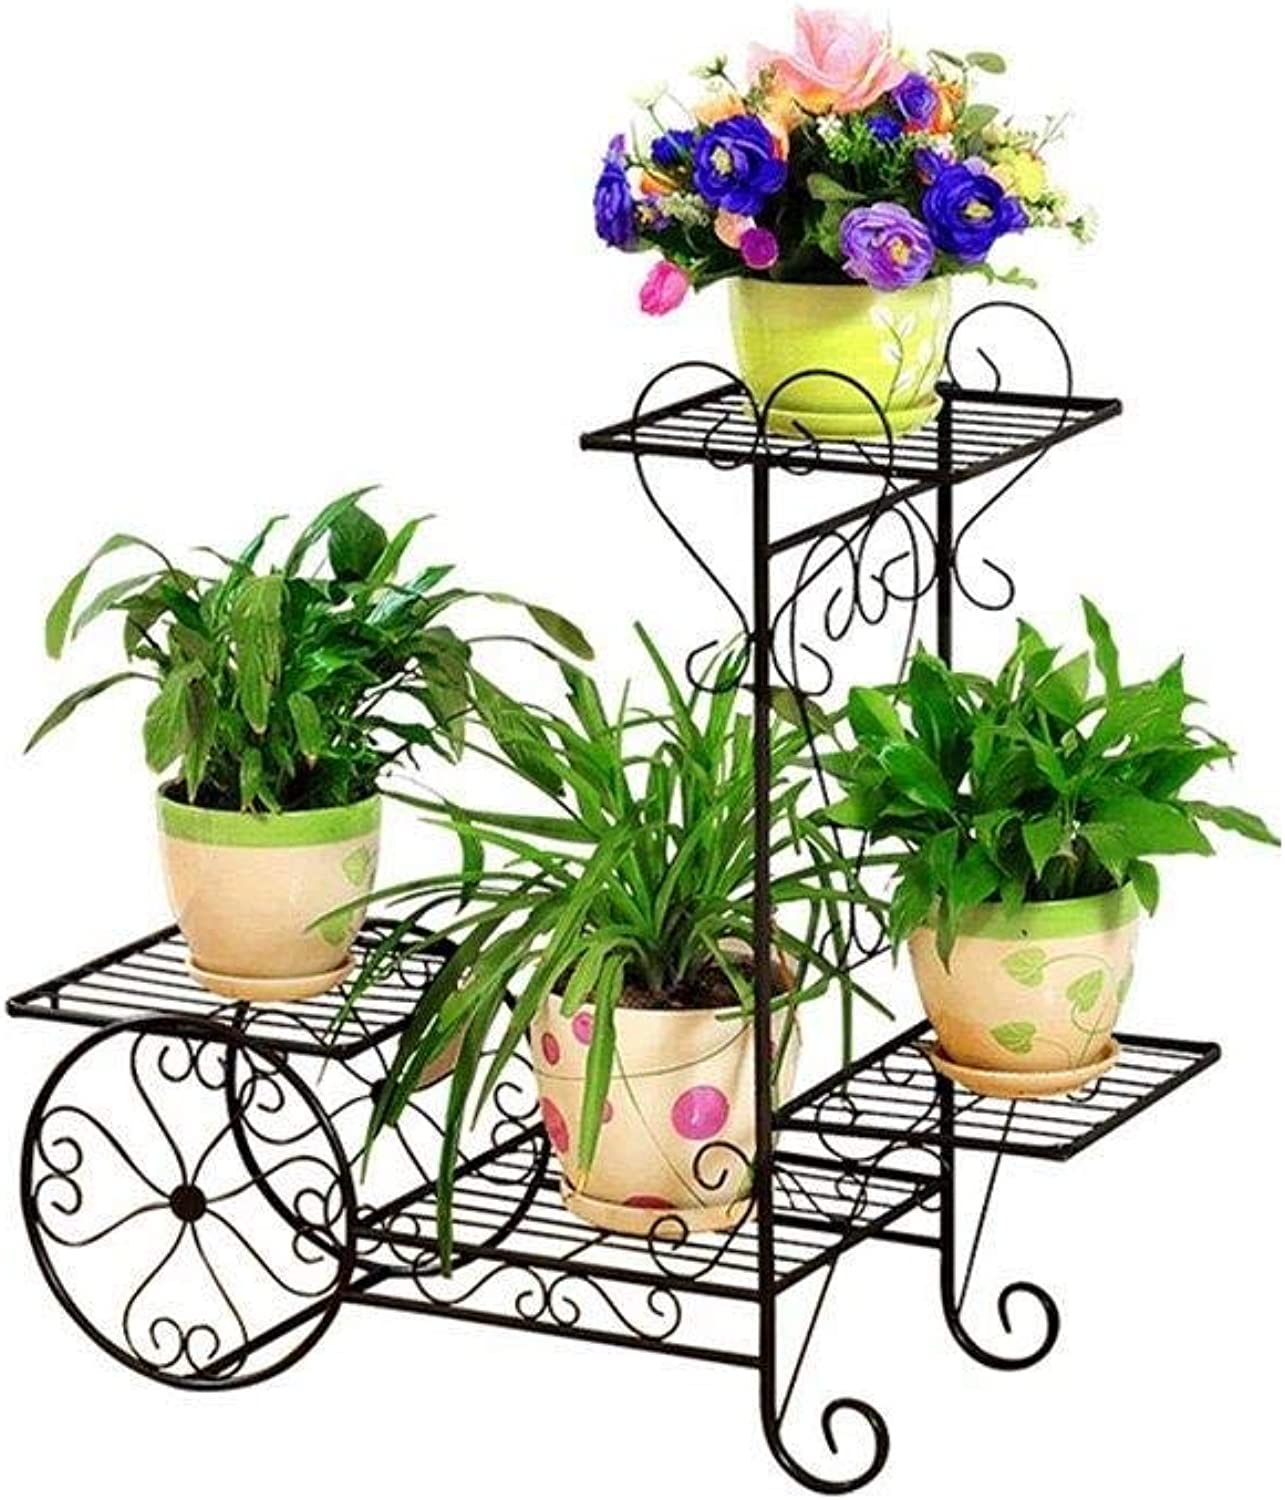 Flower Stand - Metal Floor Type Multi-Layer Flower Pot Plant Display Stand, Multi-Function Storage Rack, Garden Cart Rack, Suitable for Family, Garden, Courtyard (color   Black, Size   Small)